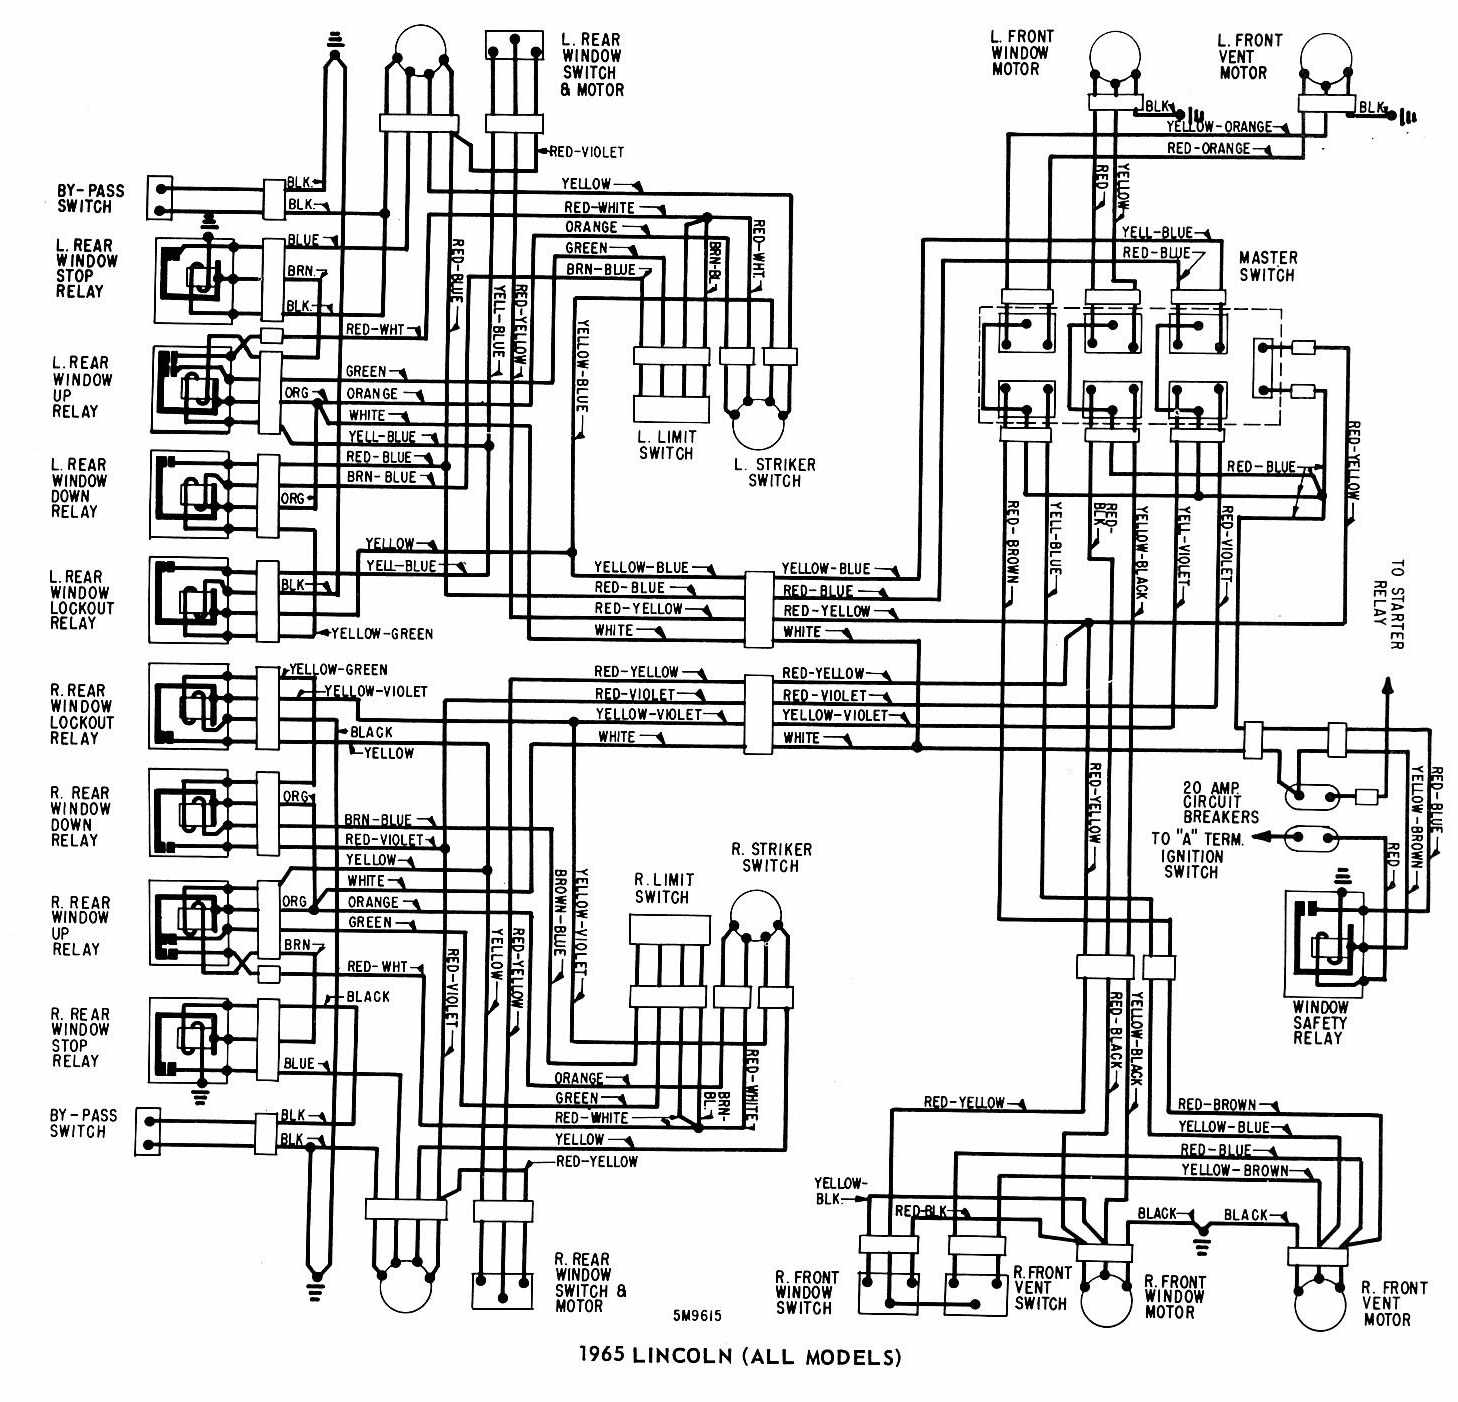 medium resolution of 1962 lincoln wiring diagram free wiring diagram for you u2022 eurodrive wiring diagrams 1960 lincoln wiring diagram